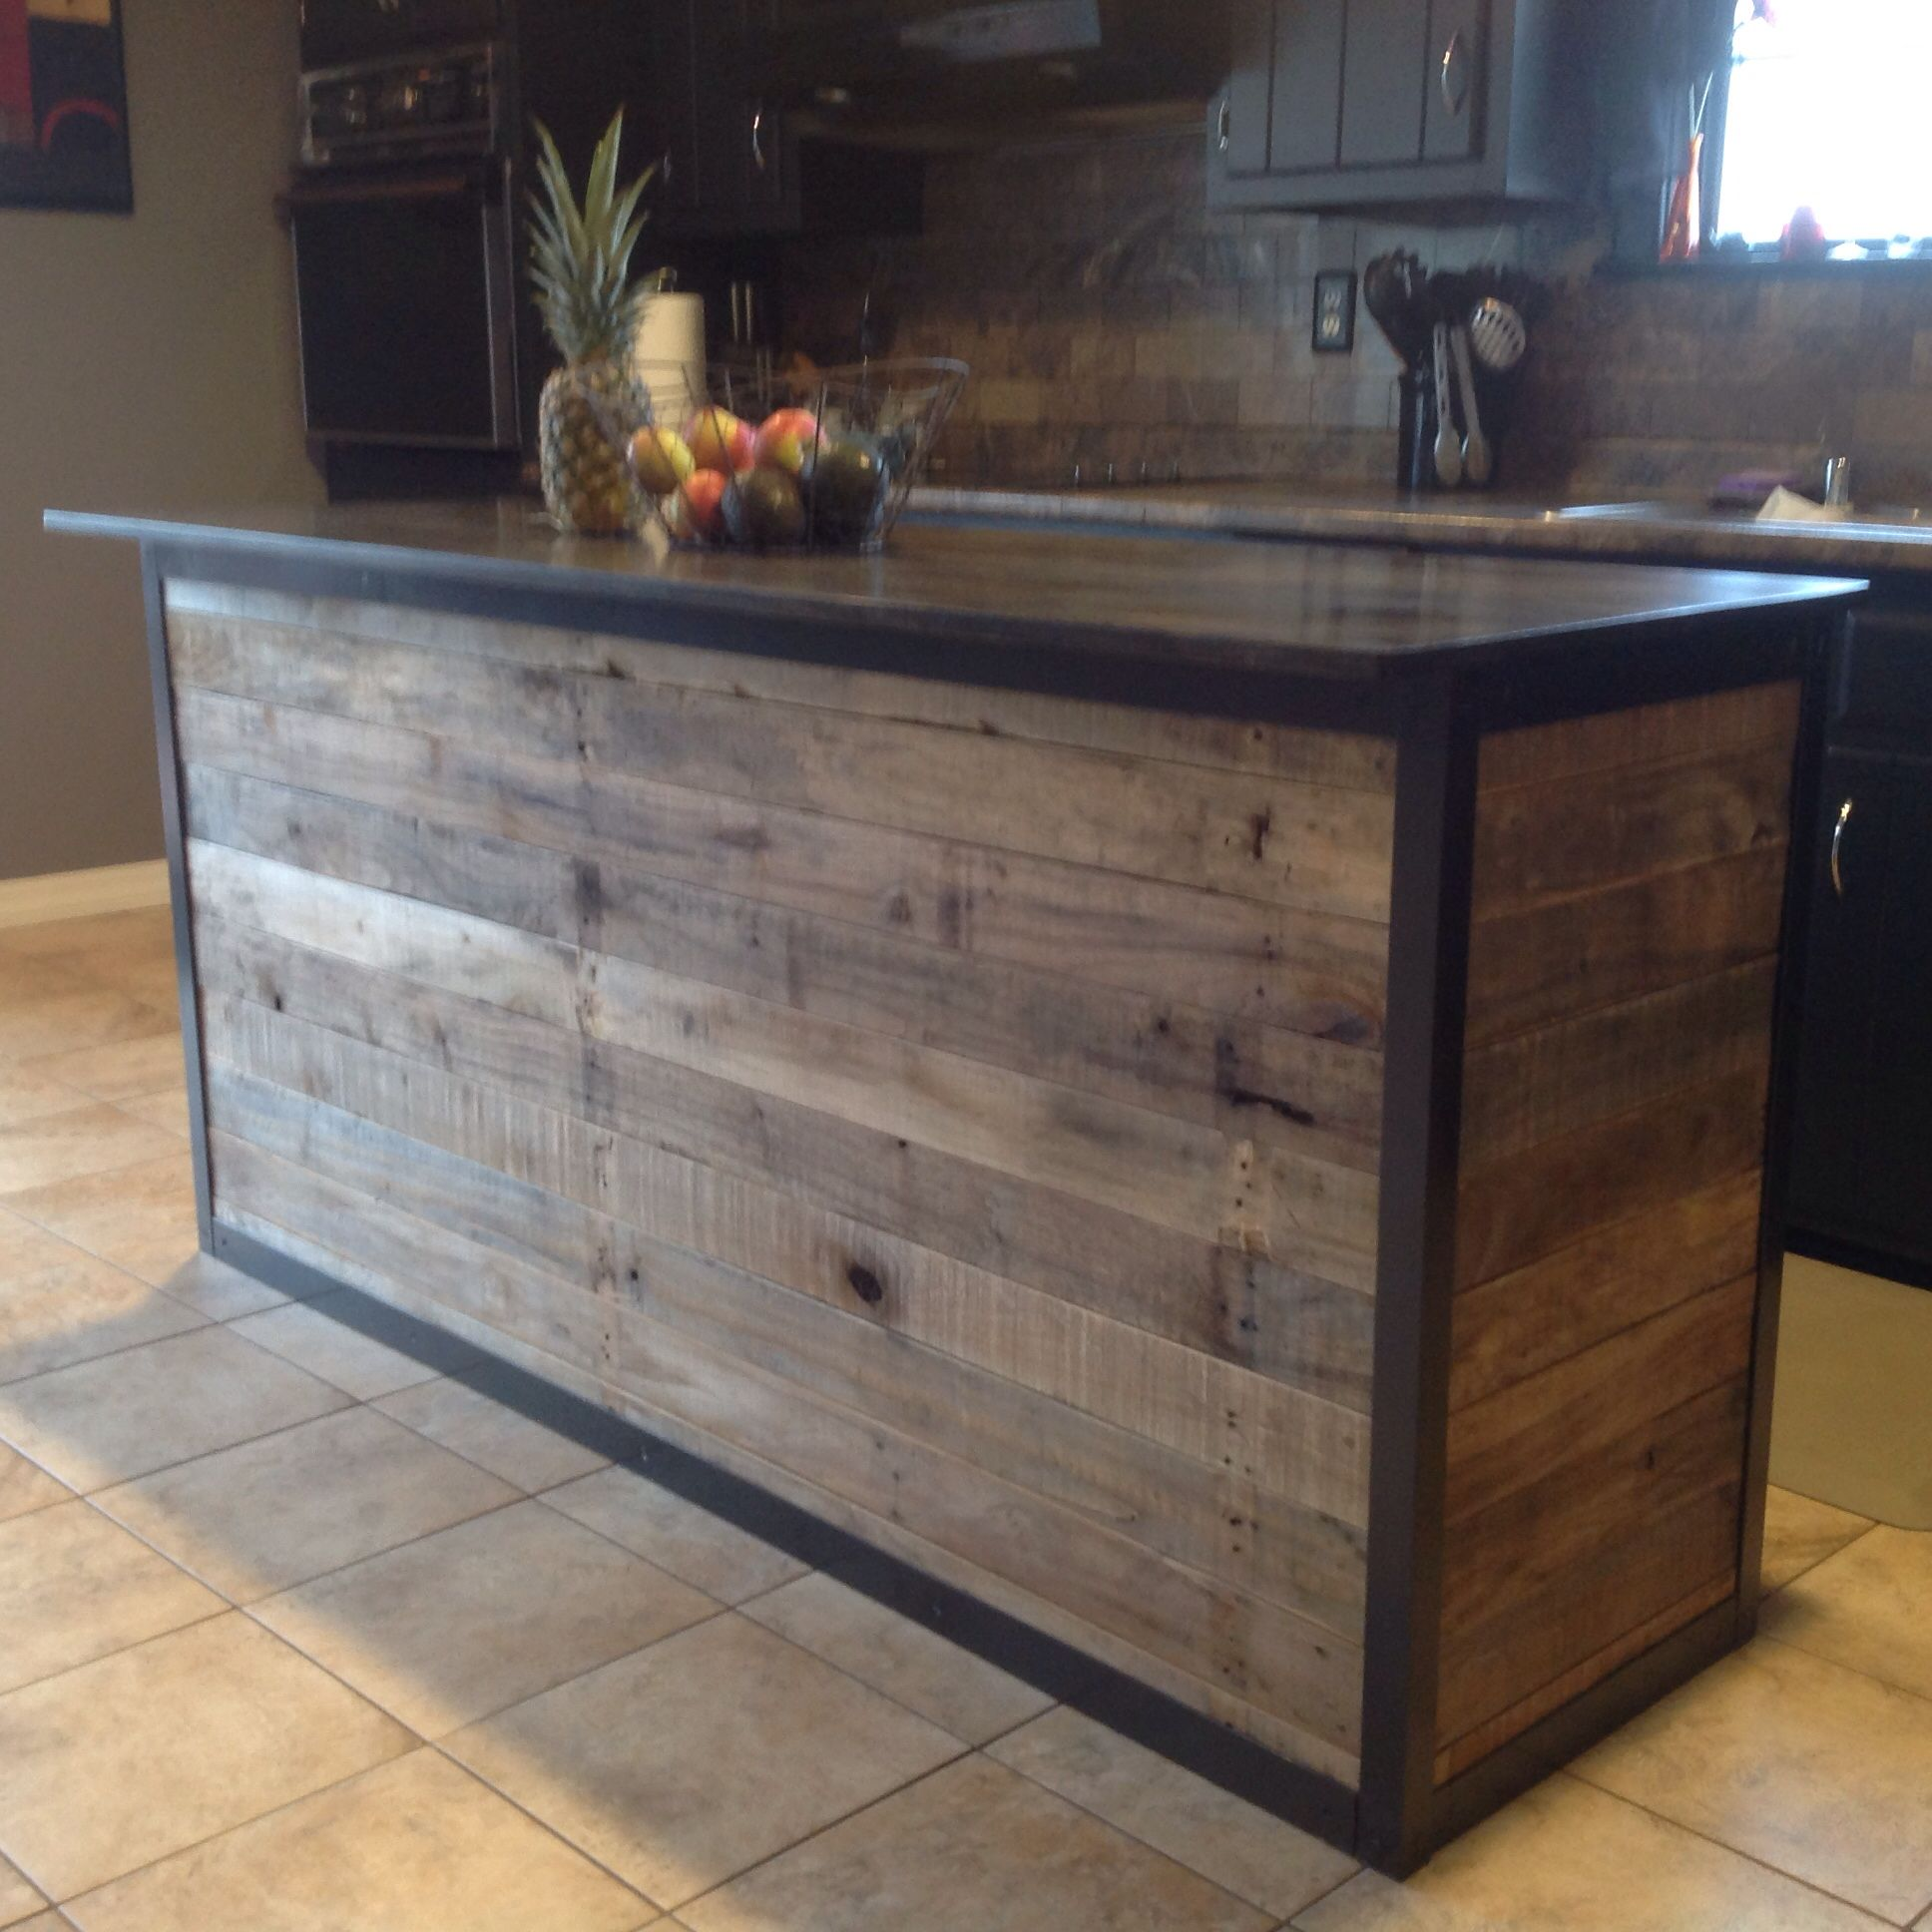 Western Countertops Diy Kitchen Island Made From Pallet Wood House Ideas